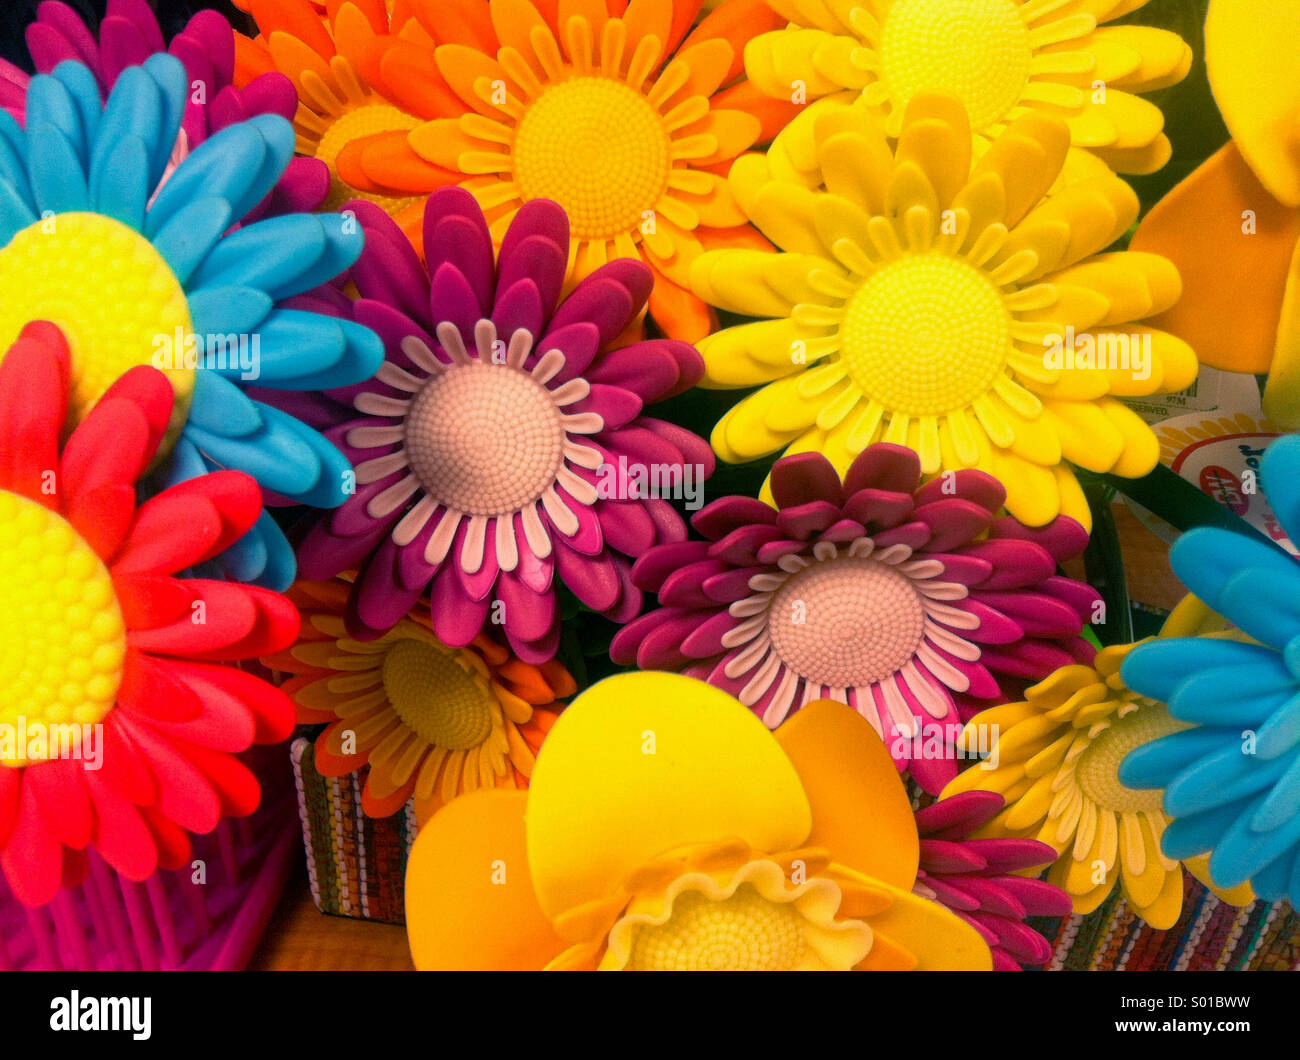 A colorful photograph of plastic daisies - Stock Image